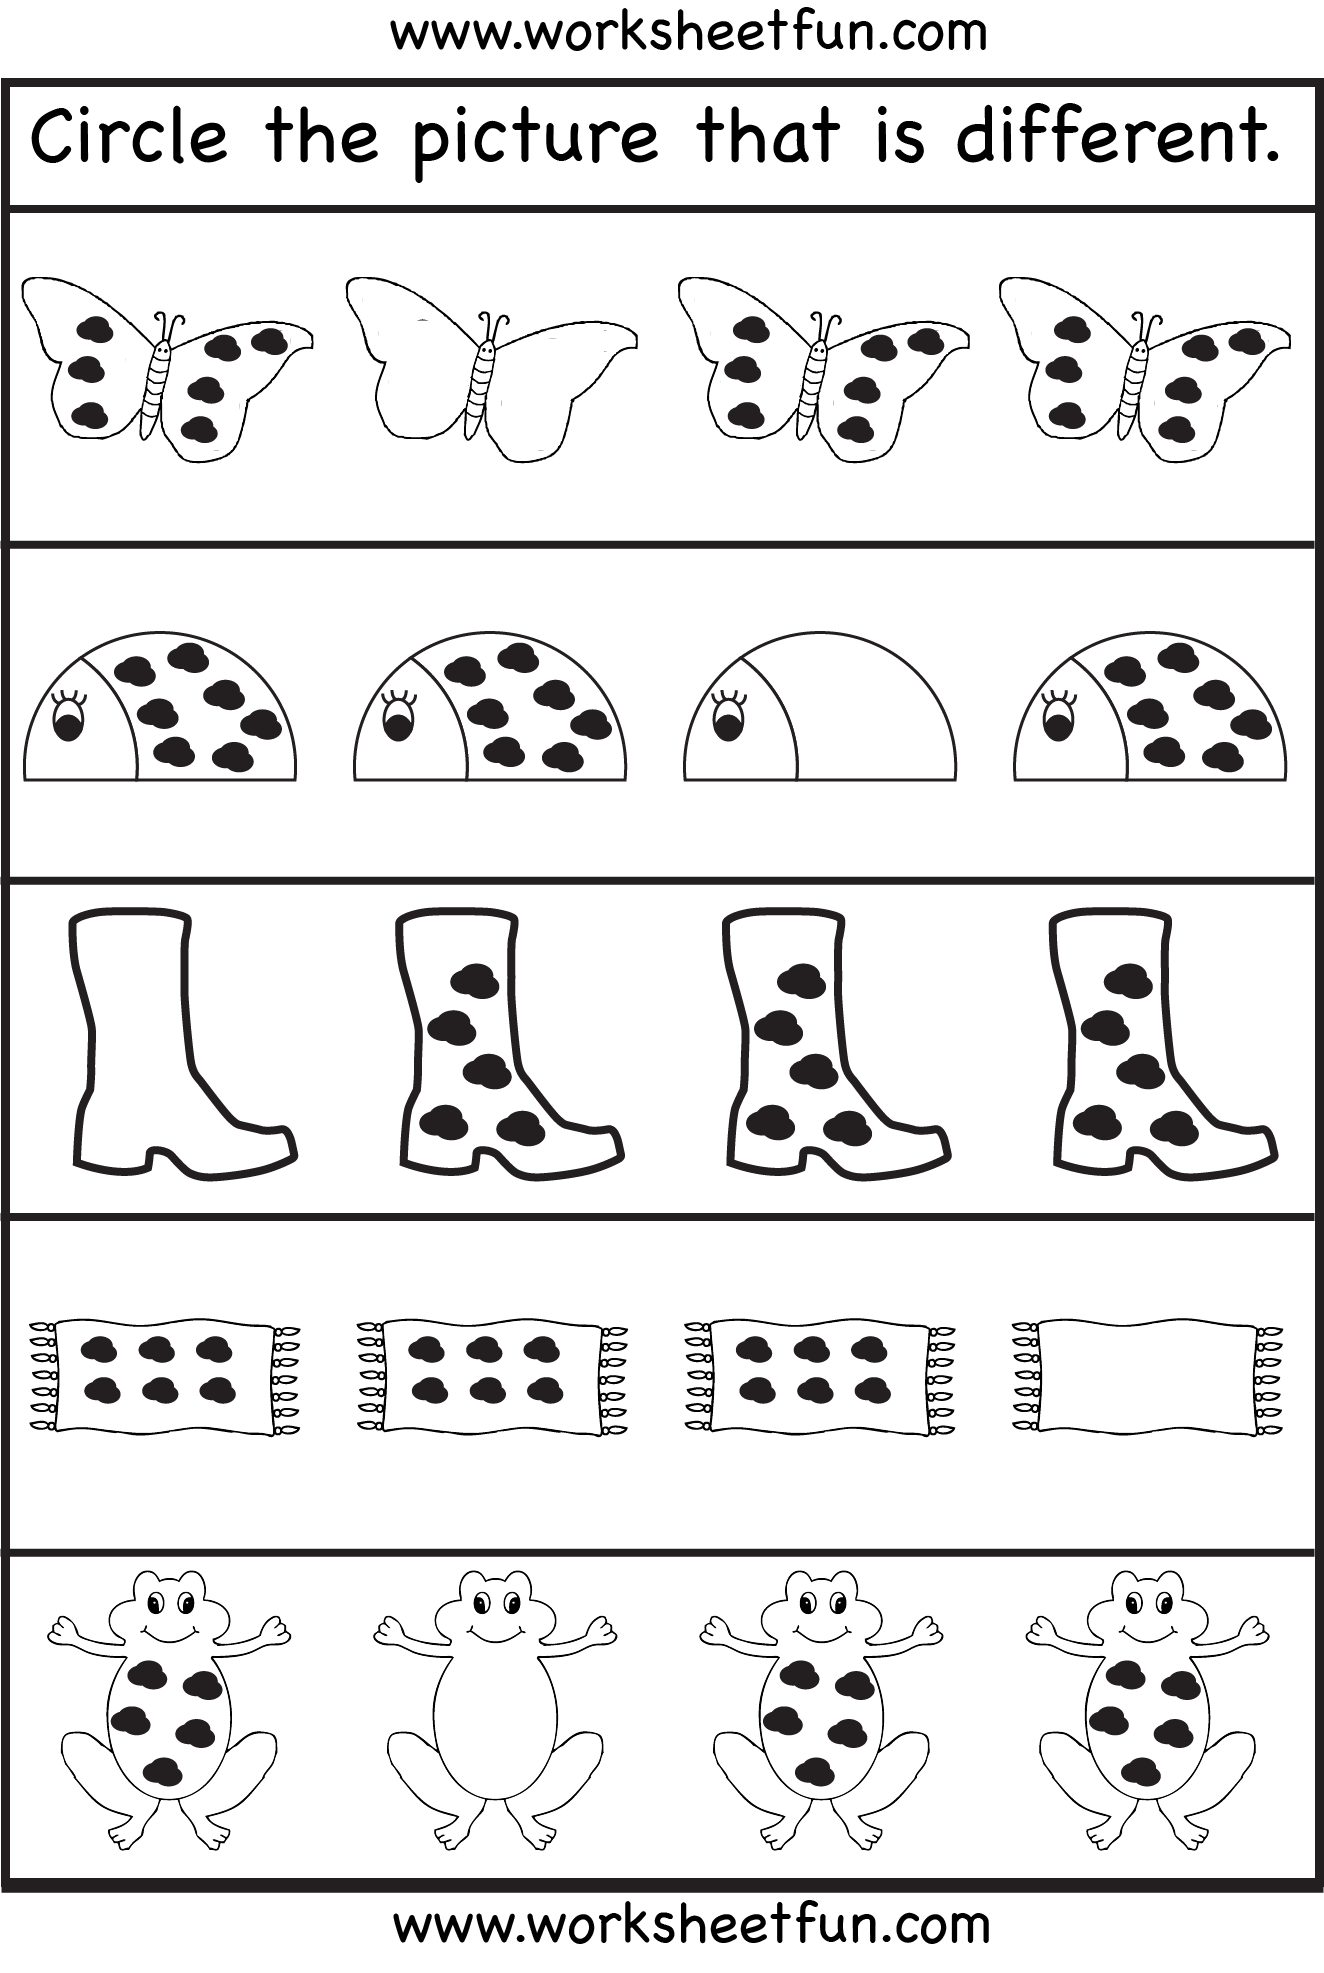 image regarding Educational Activities for 3 Year Olds Printable identify Circle the imagine that is alternate - 3 Worksheets